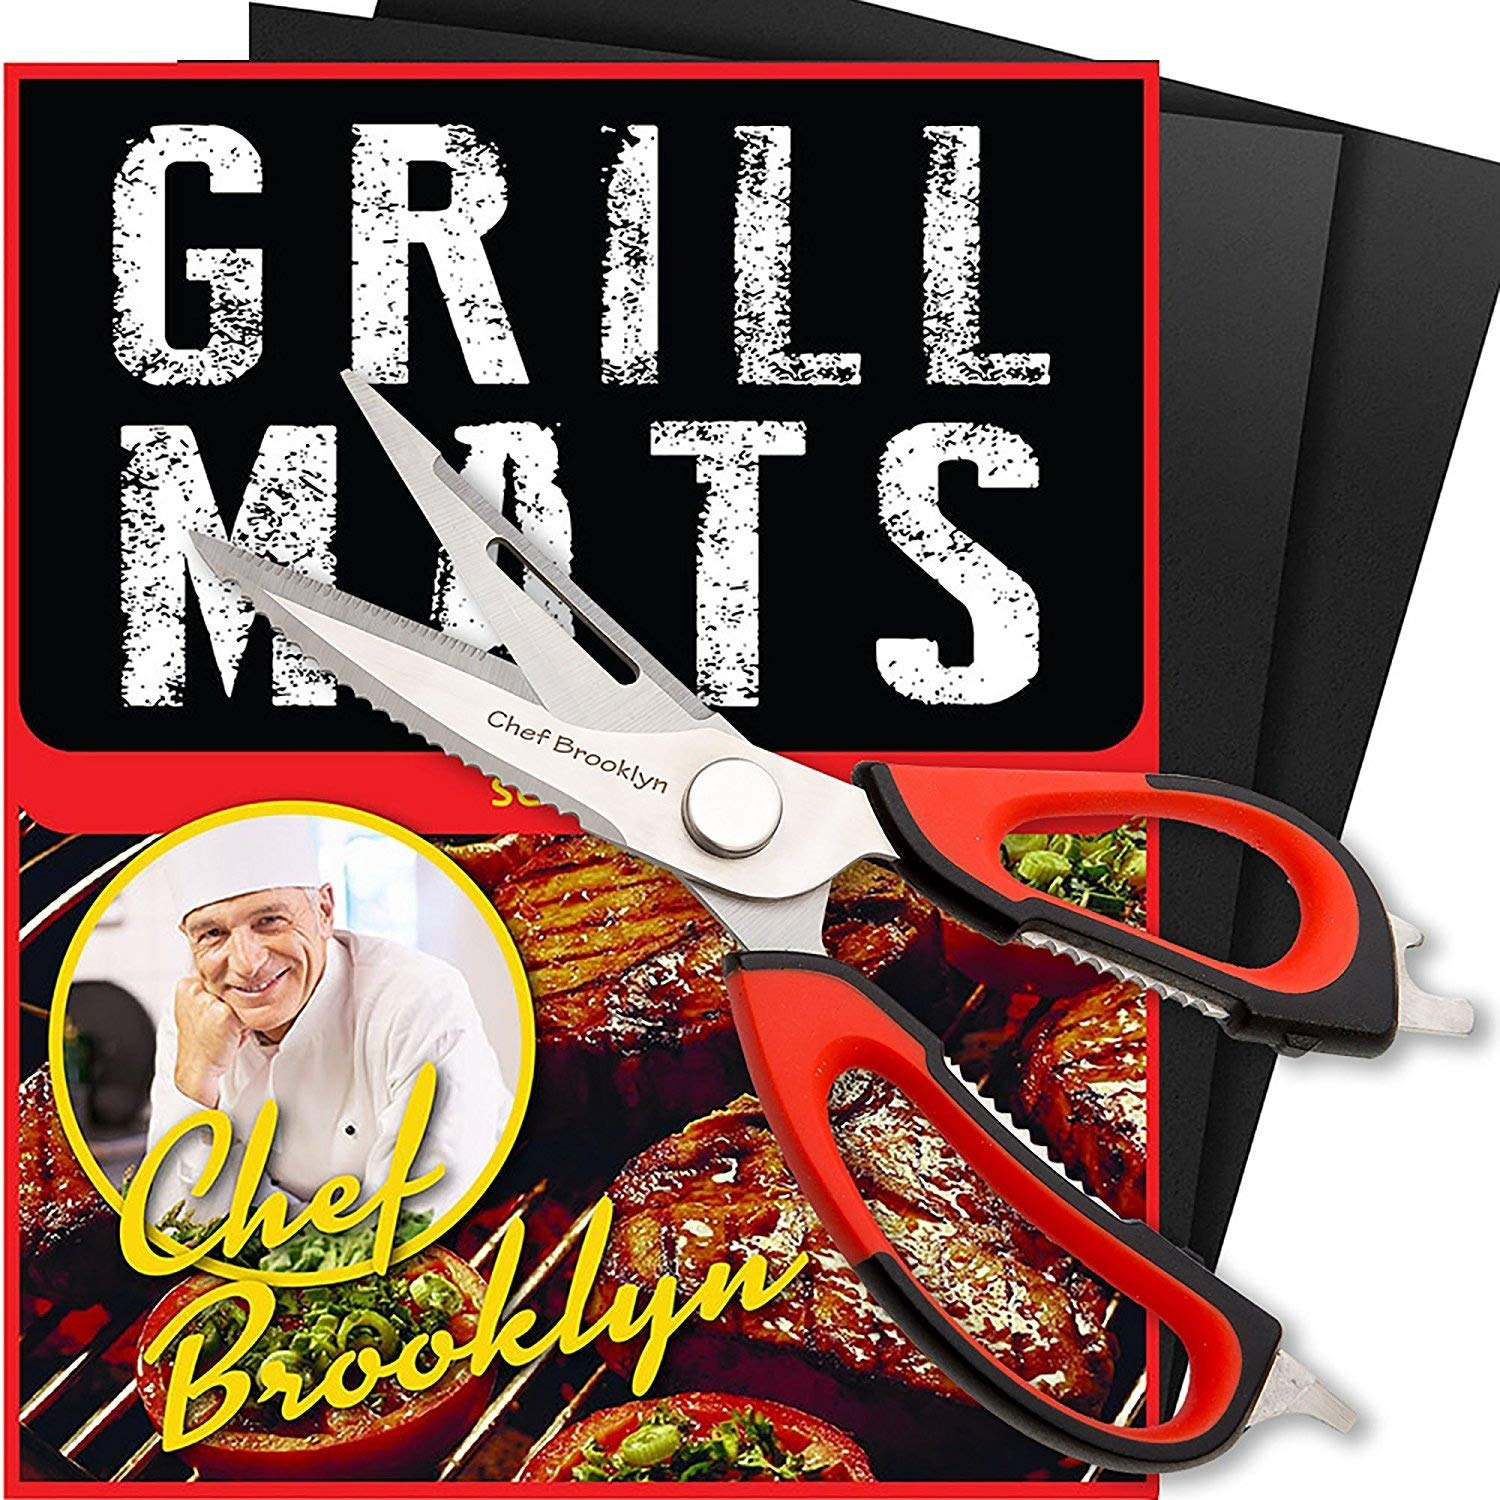 Chef Brooklyn BBQ Grill Mats with Bonus Kitchen Scissors- Heavy Duty Multi-Functional Scissors Sharp Perfect for Chicken, Poultry, Fish, Meat, Herbs and Outdoors for the BBQ\'S Camping or on the Boat